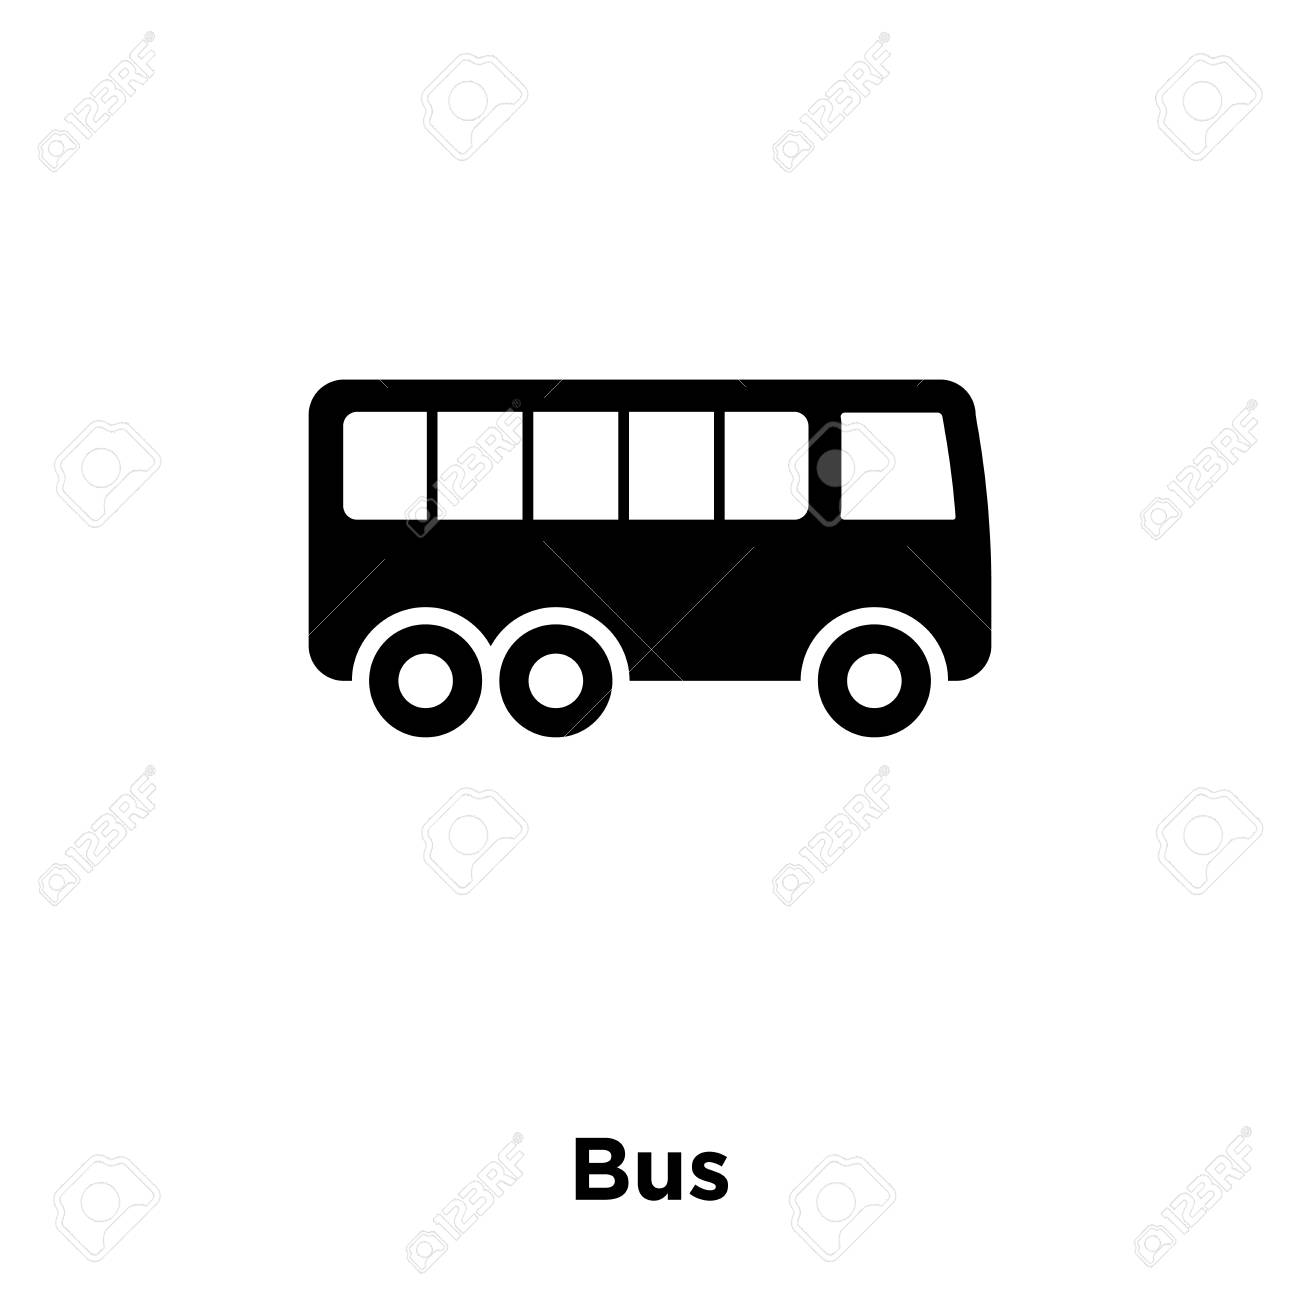 bus icon vector isolated on white background logo concept of bus